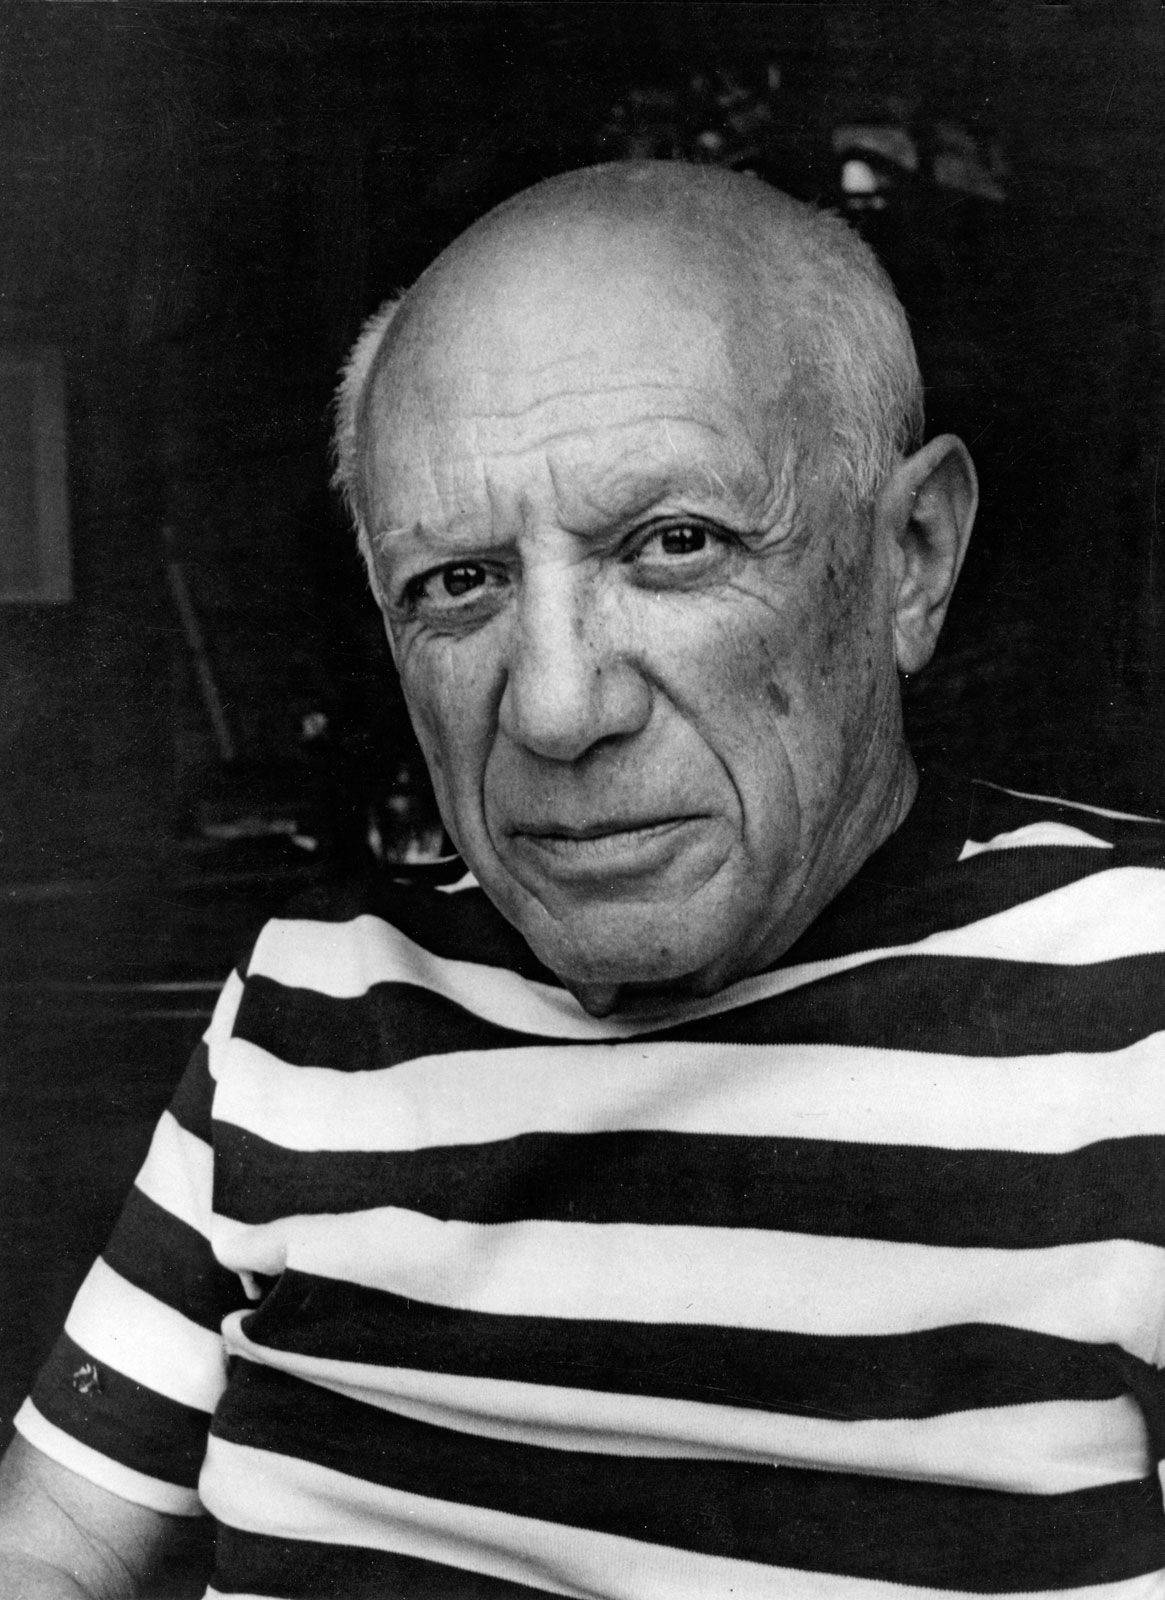 Picasso, Picasso Pictures